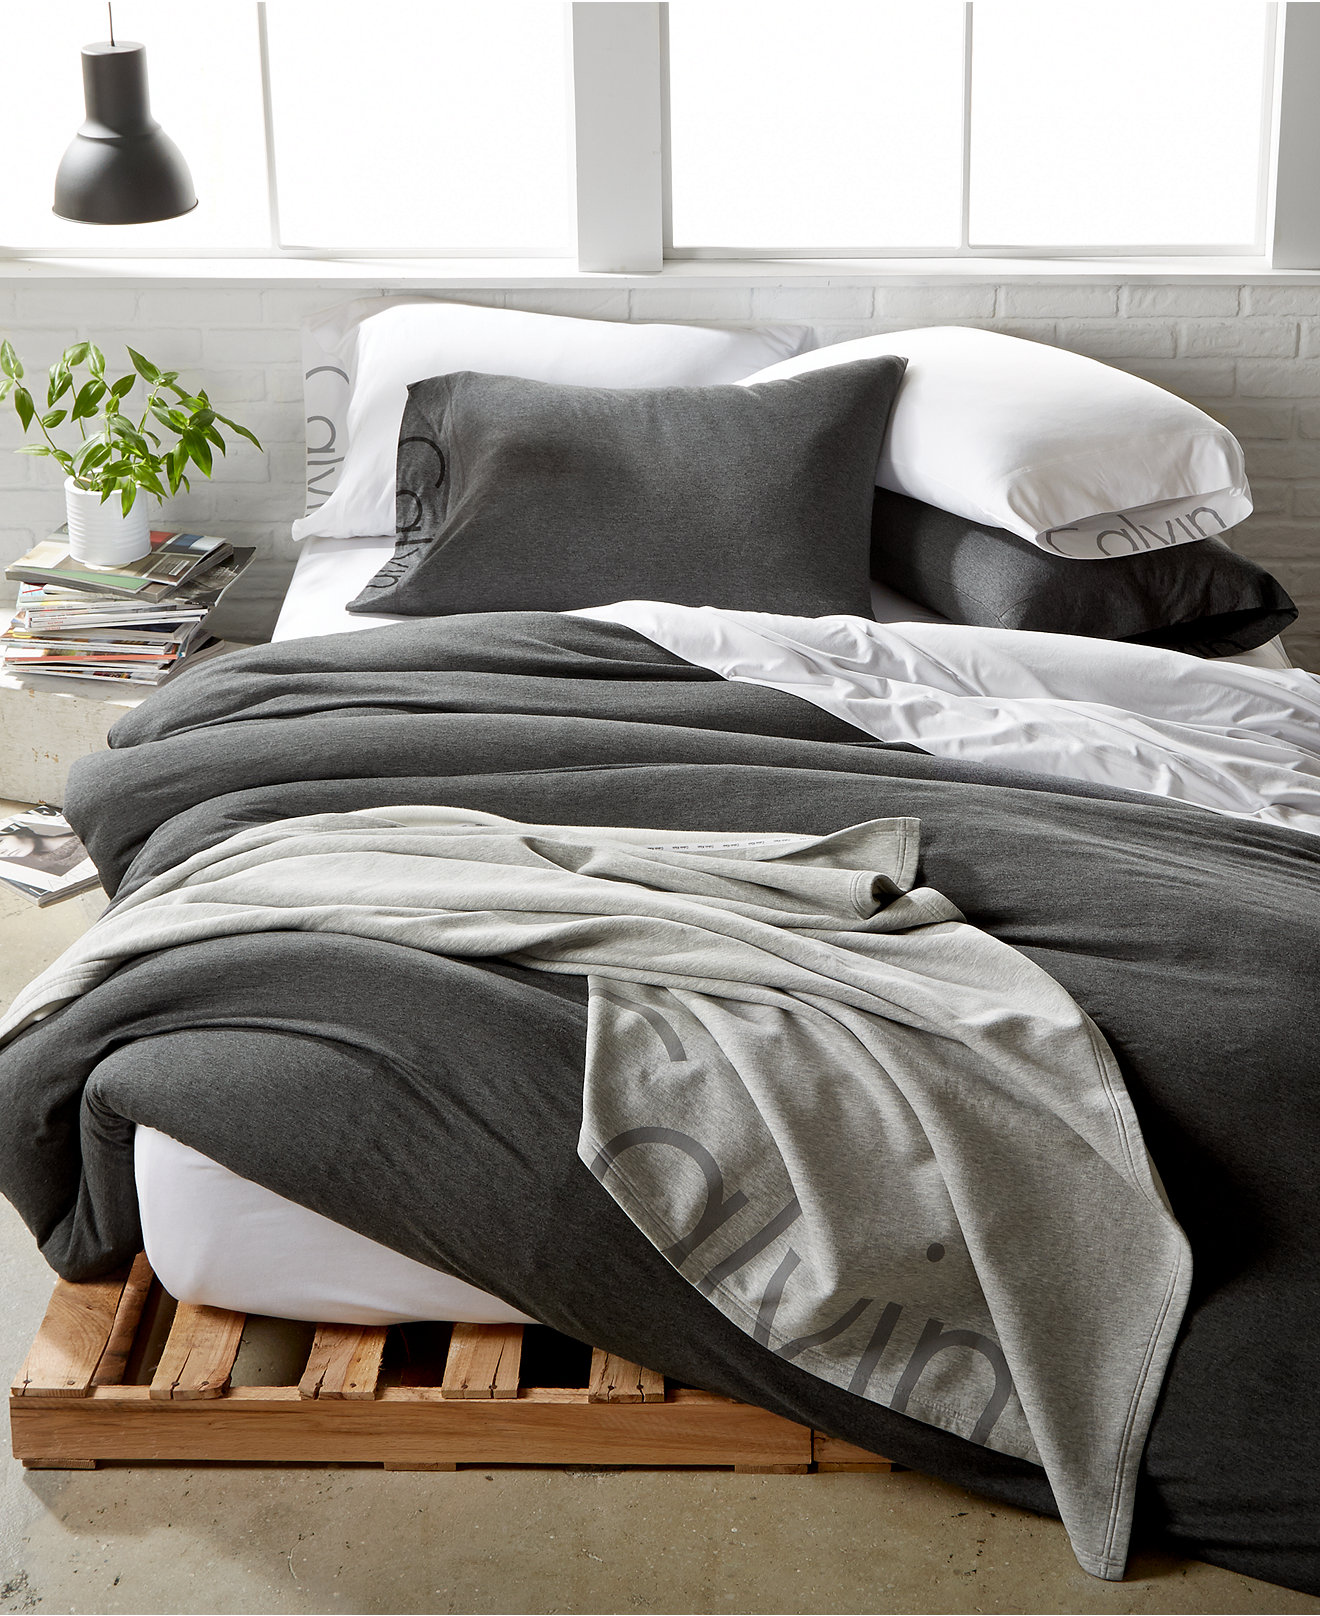 bedding collections  macy's - calvin klein modern cotton body bedding collection